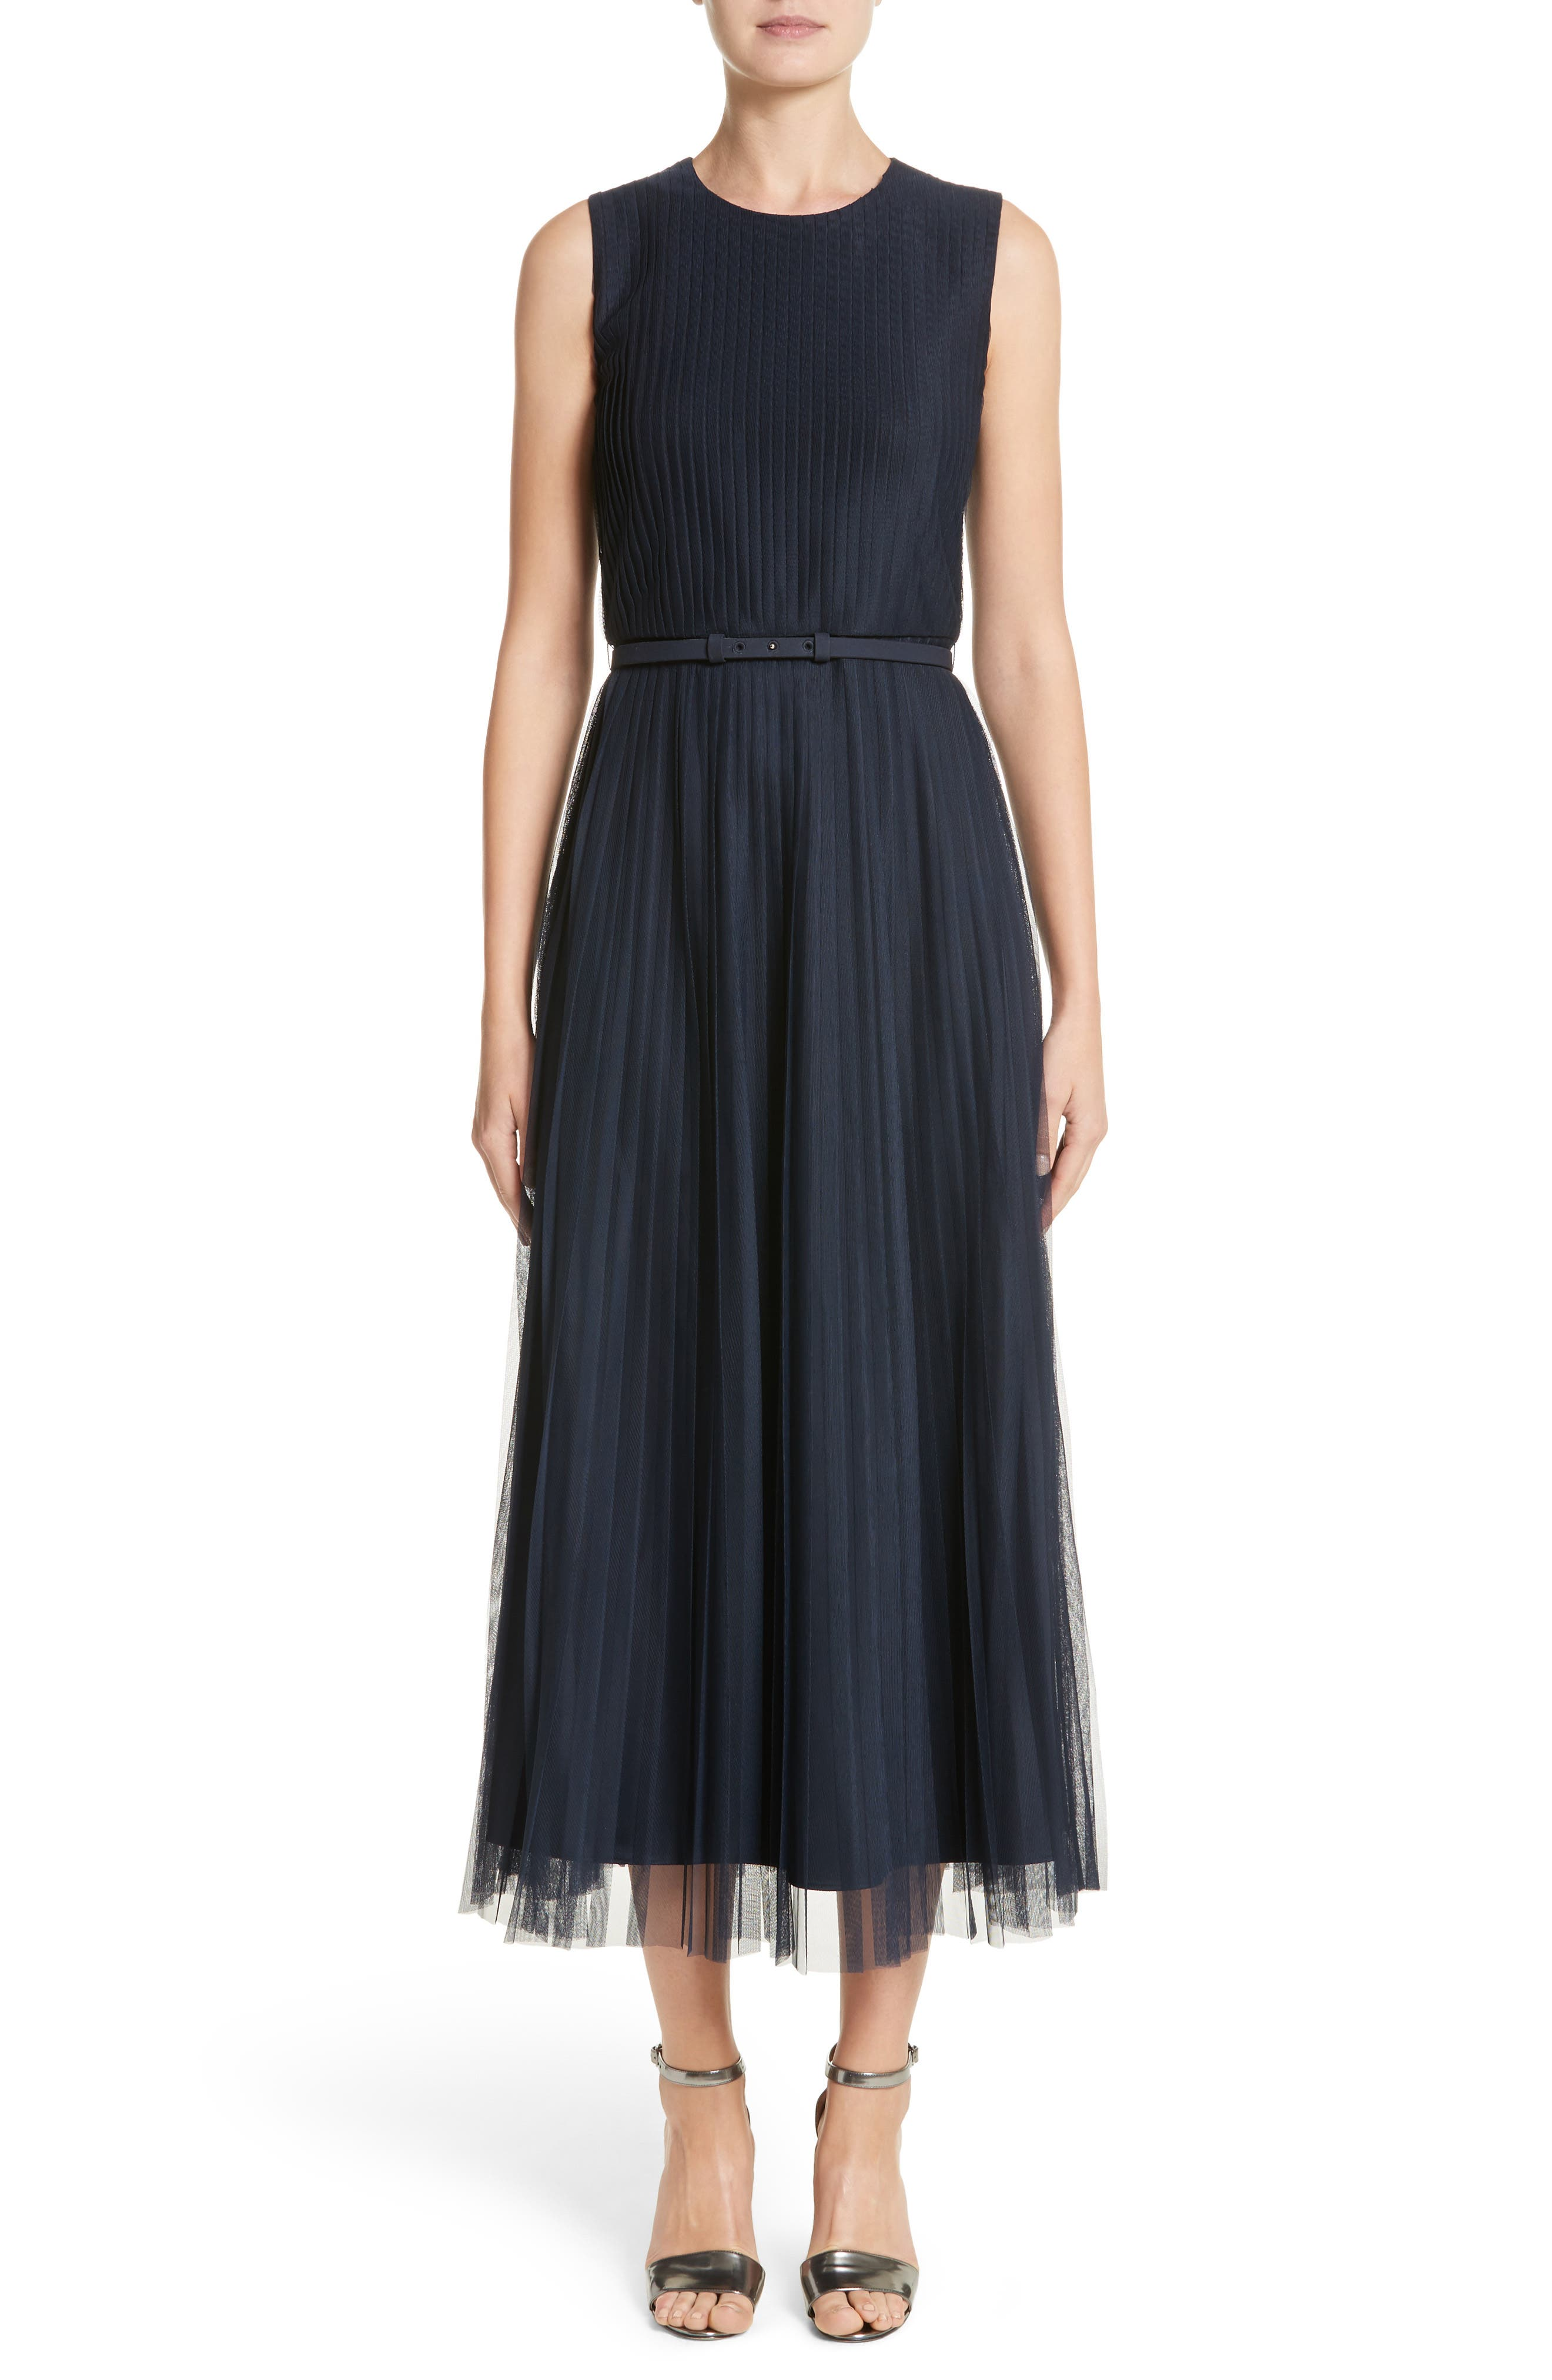 Alternate Image 1 Selected - Lafayette 148 New York Pleated Mesh Dress